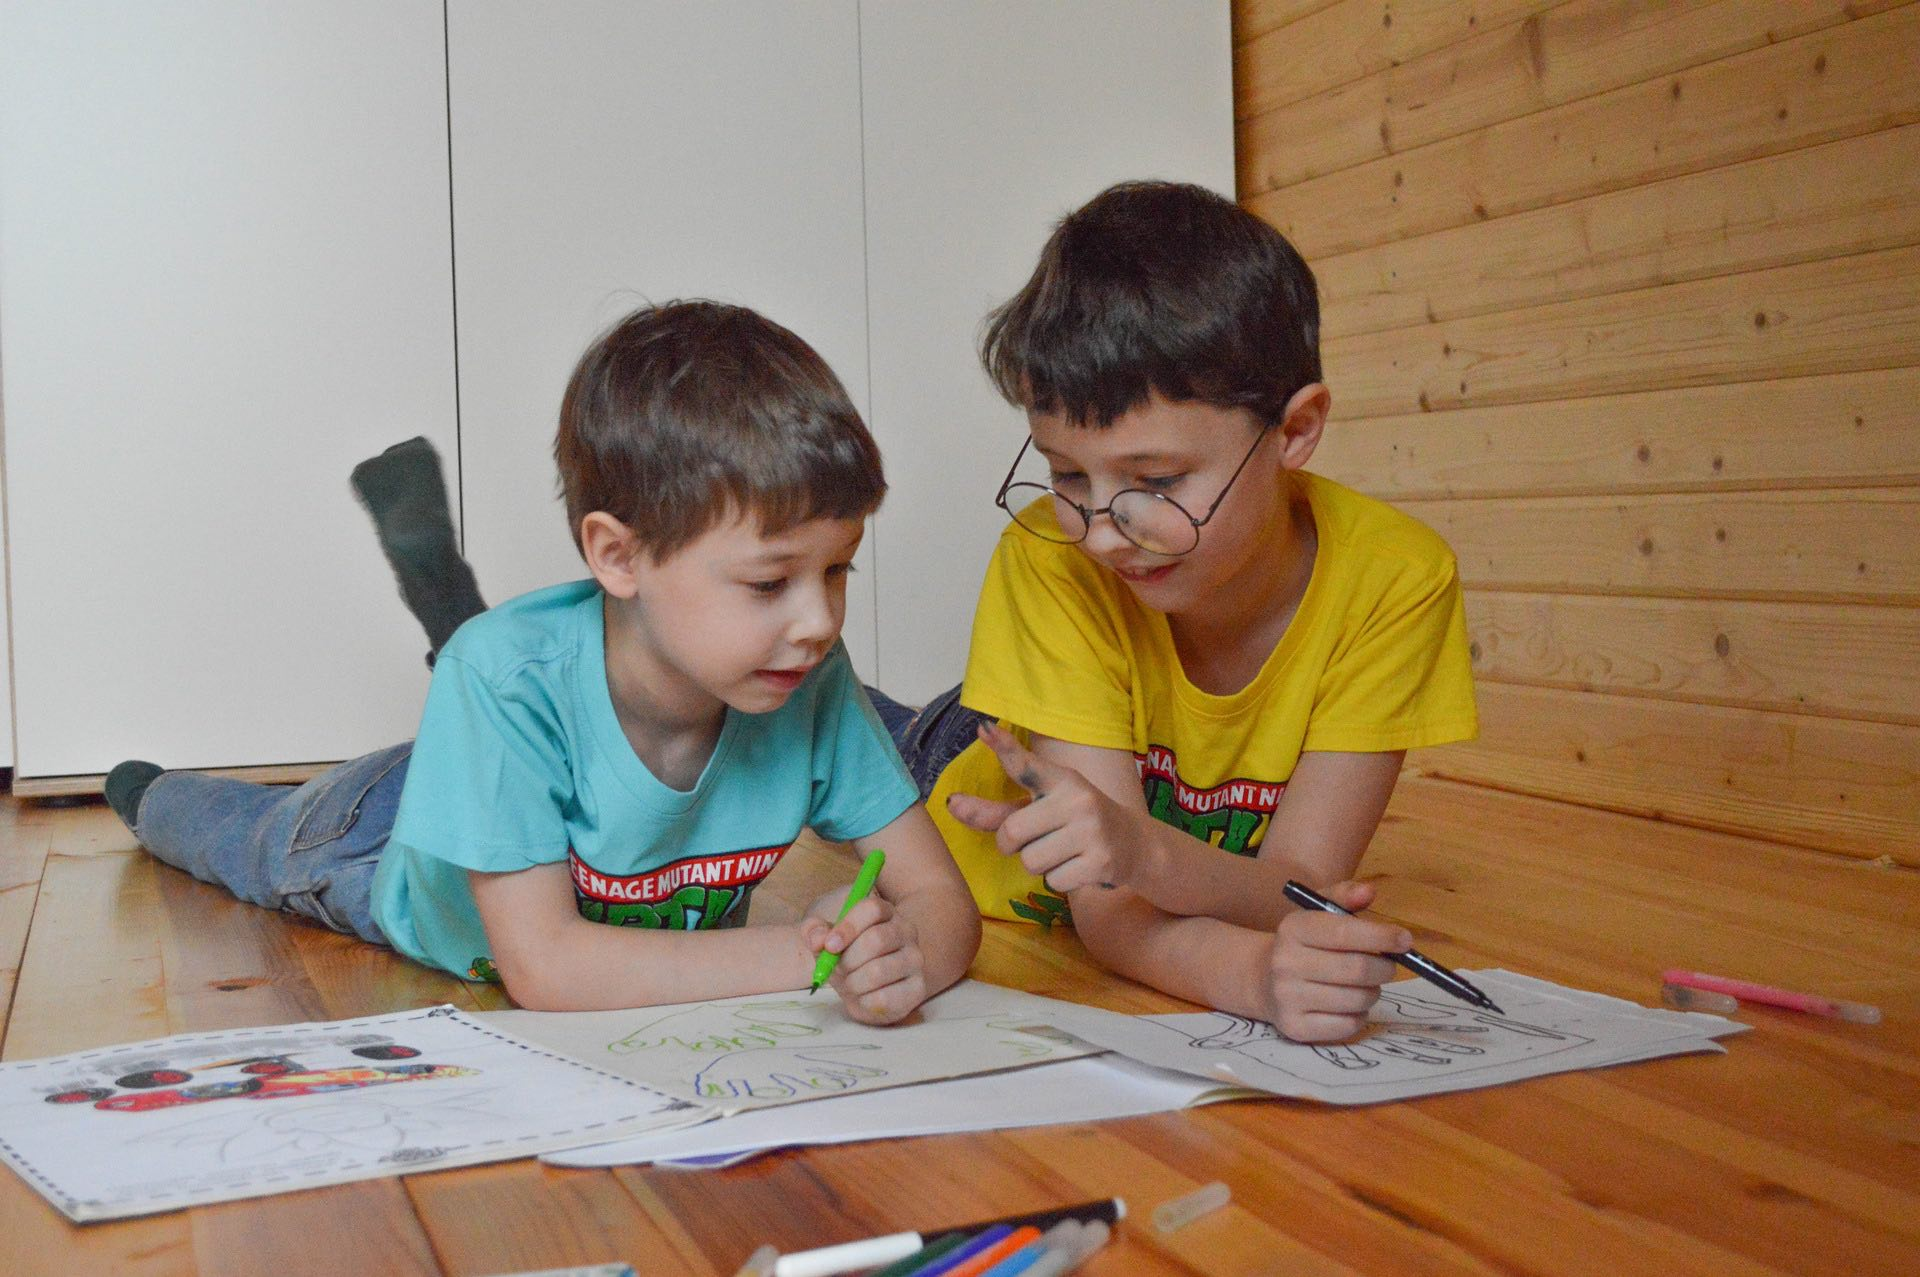 Employer gets staff involved to help working parents with home-schooling